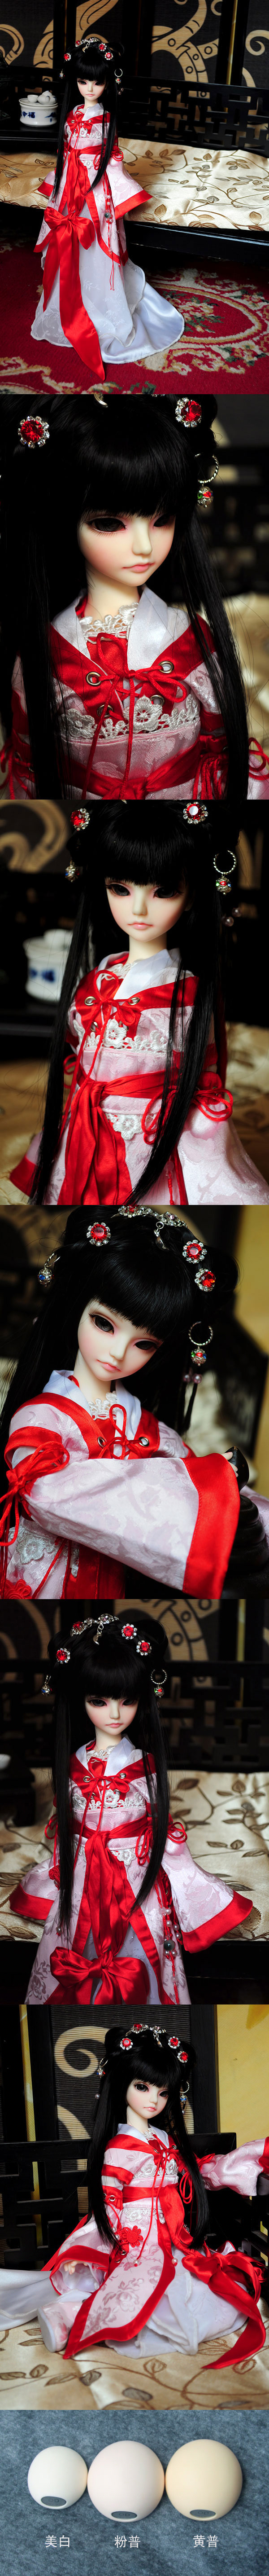 BJD Ruodie Girl 43cm Boll-jointed doll